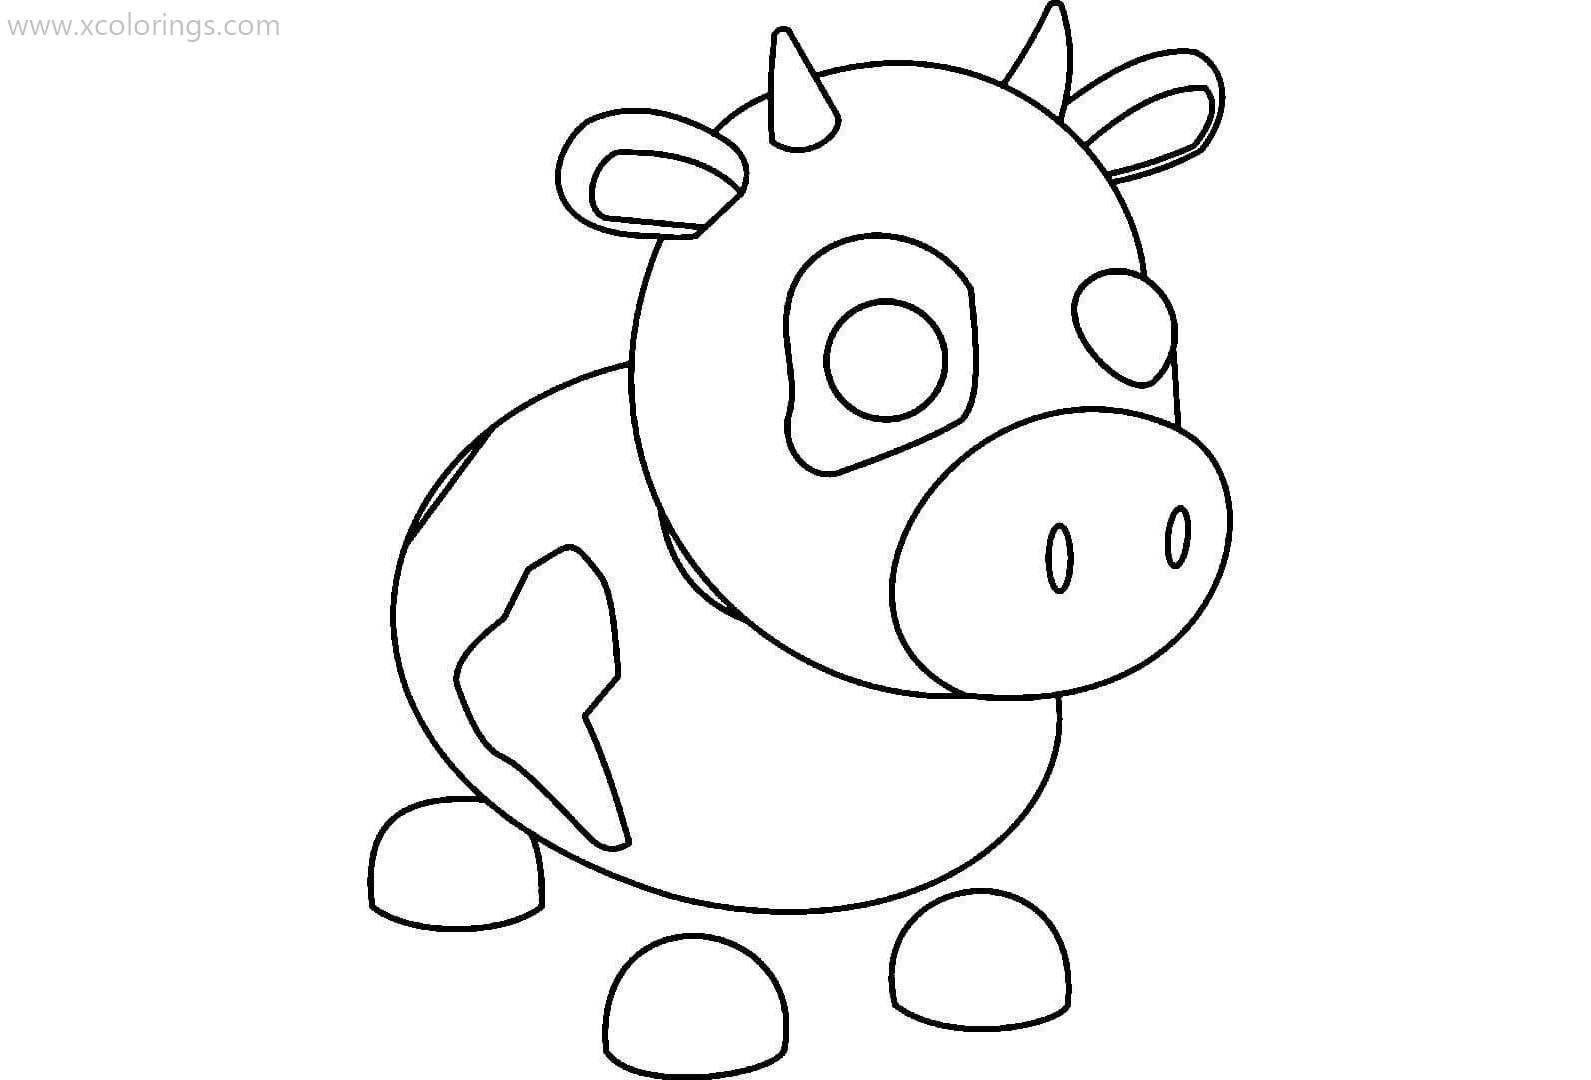 Roblox Adopt Me Coloring Pages Cow - XColorings.com